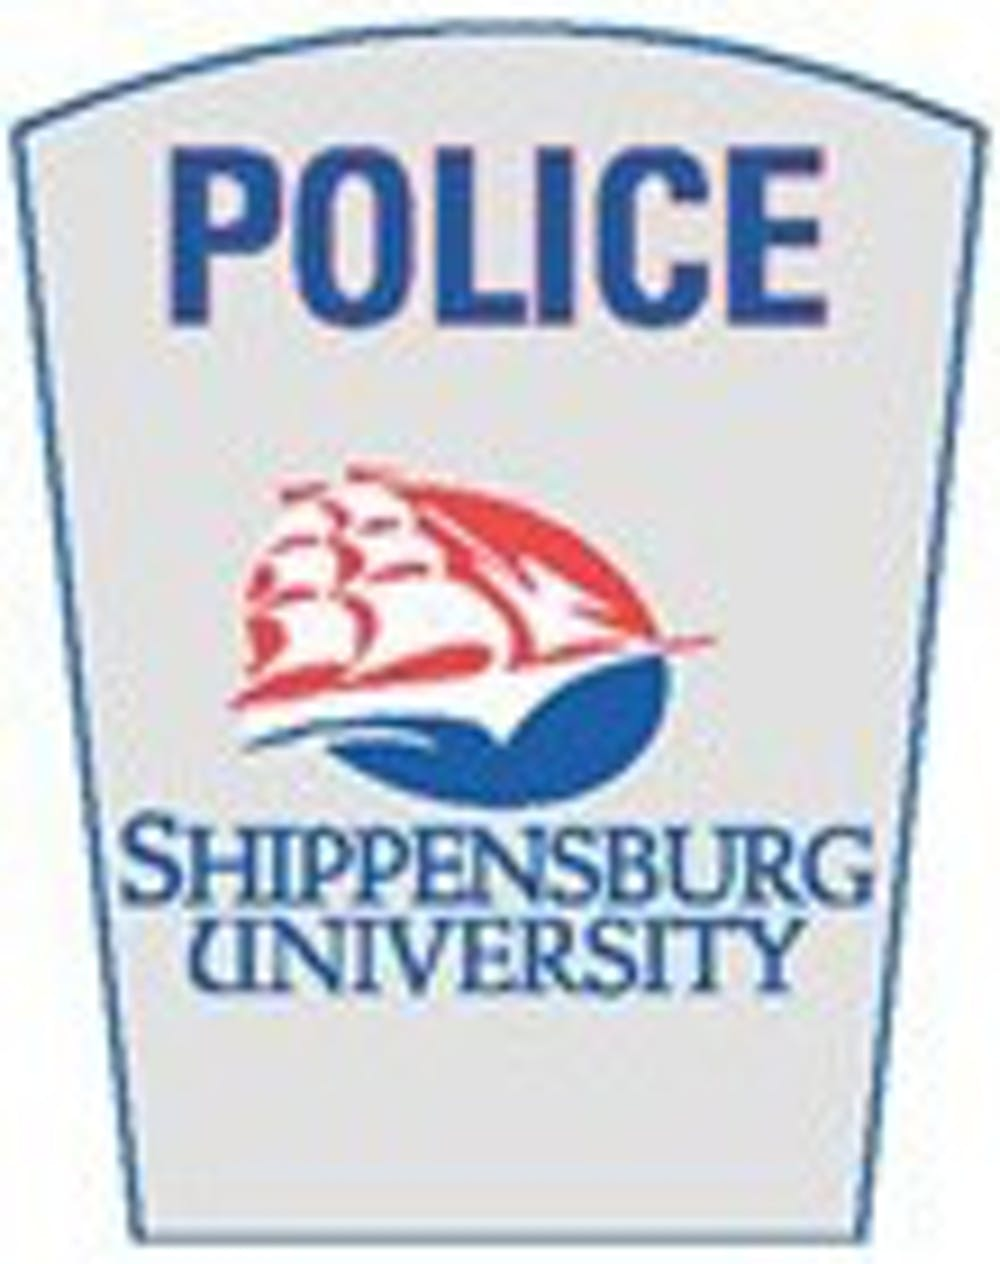 SU students can maintain safe environment on campus